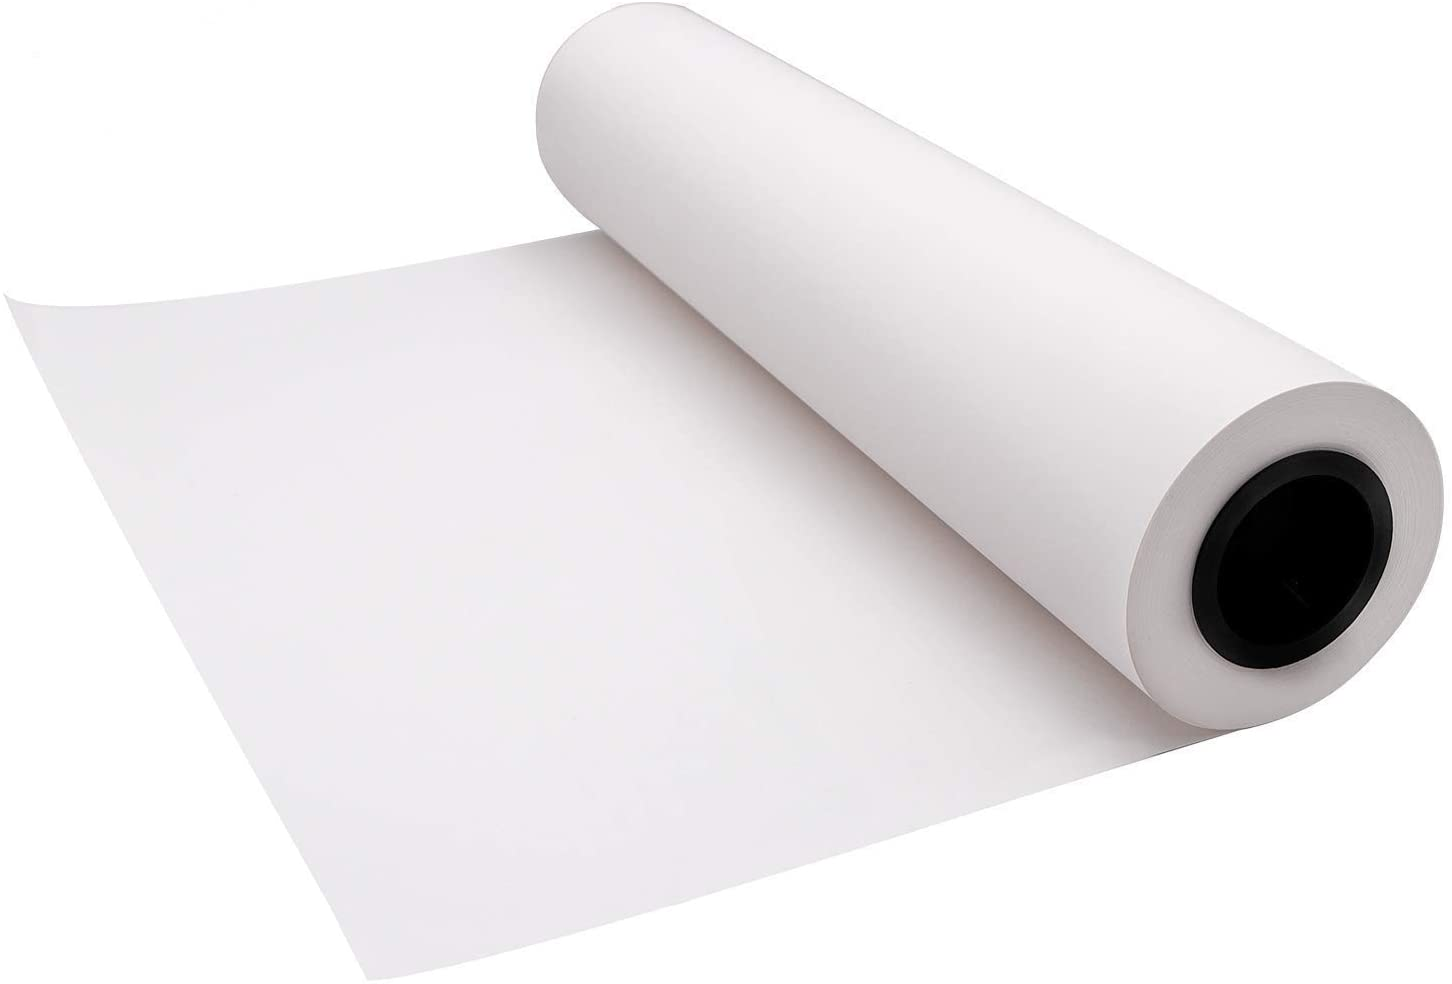 Recyclable Packaging Material - Tissue & Butcher Paper